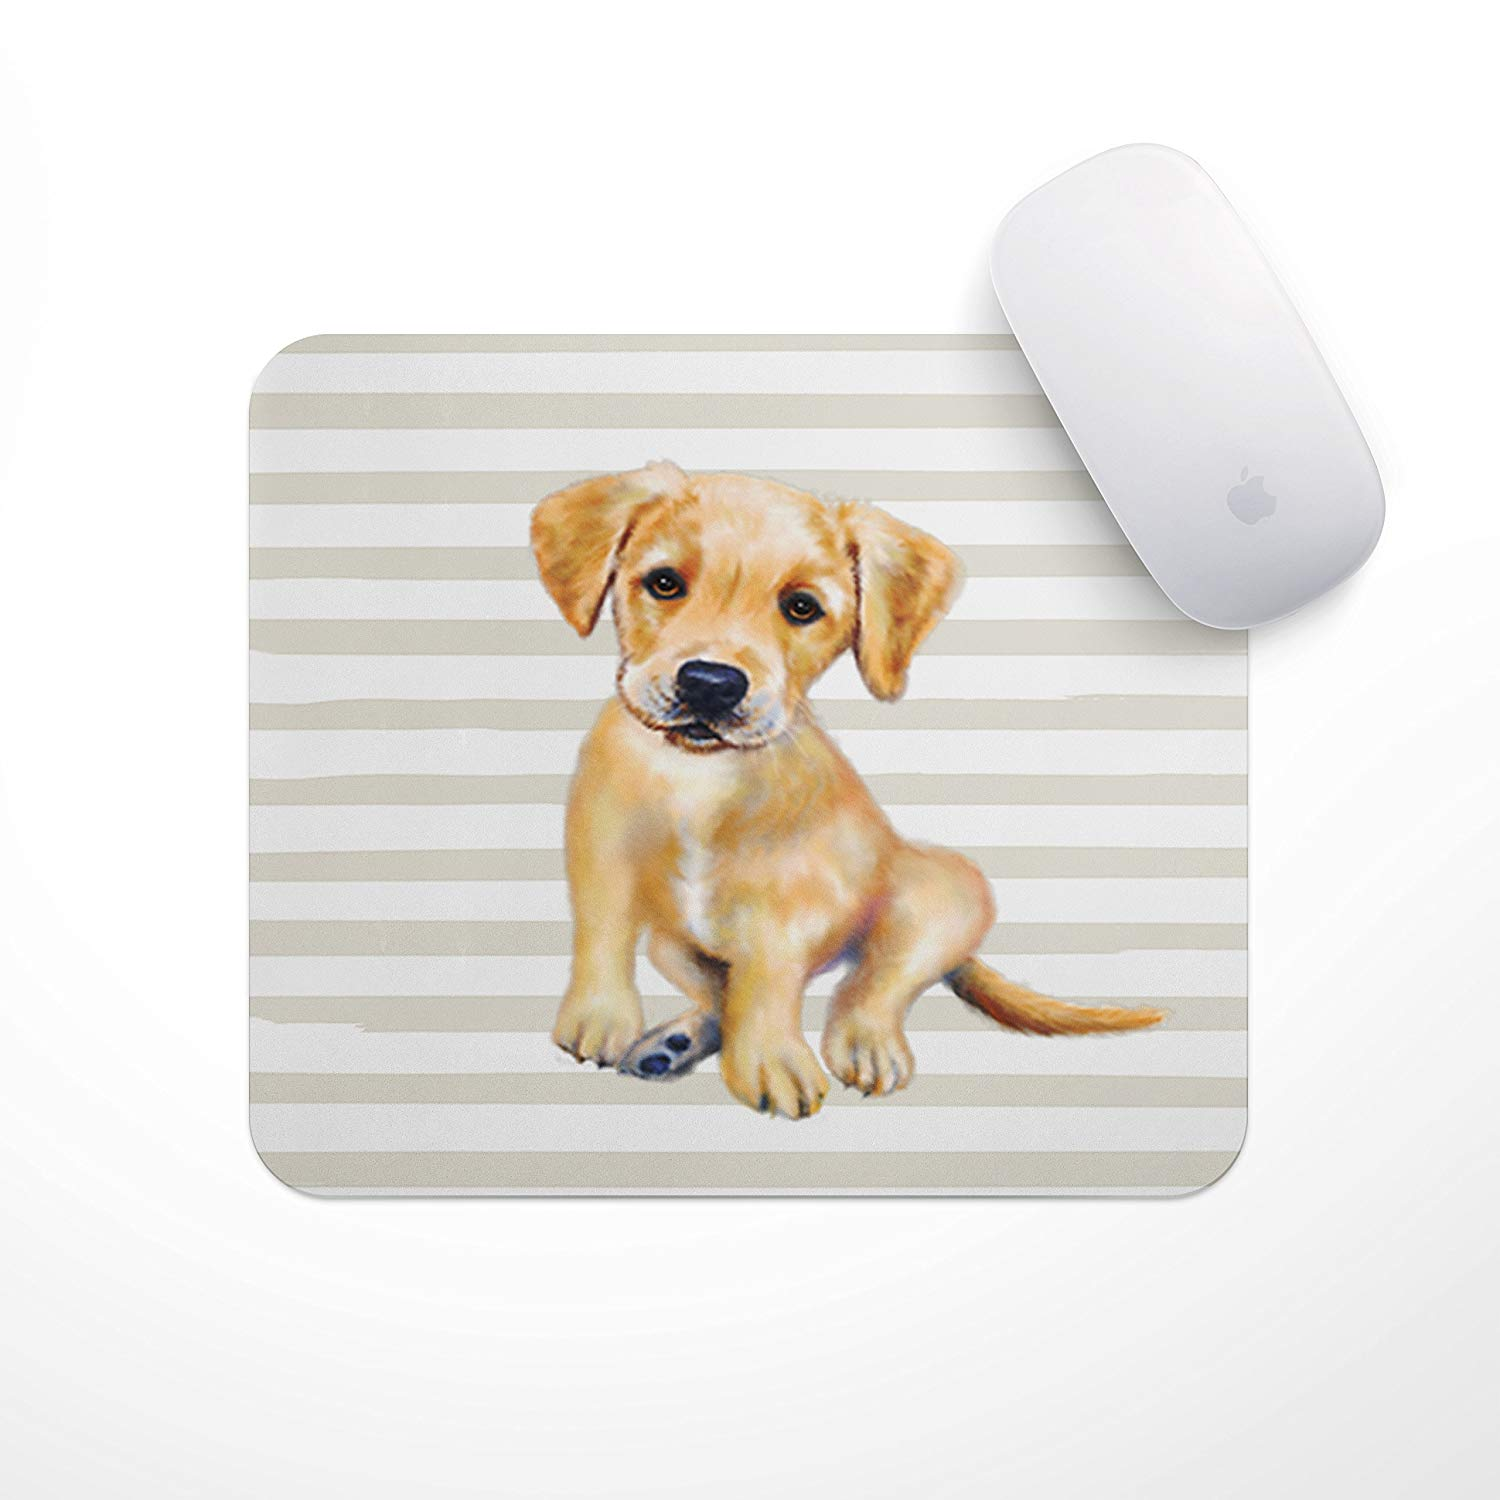 Puppy Mousepad (Yellow Lab Puppy) Puppy Mouse Pad - Perfect for Dog Mom and Dog Dad